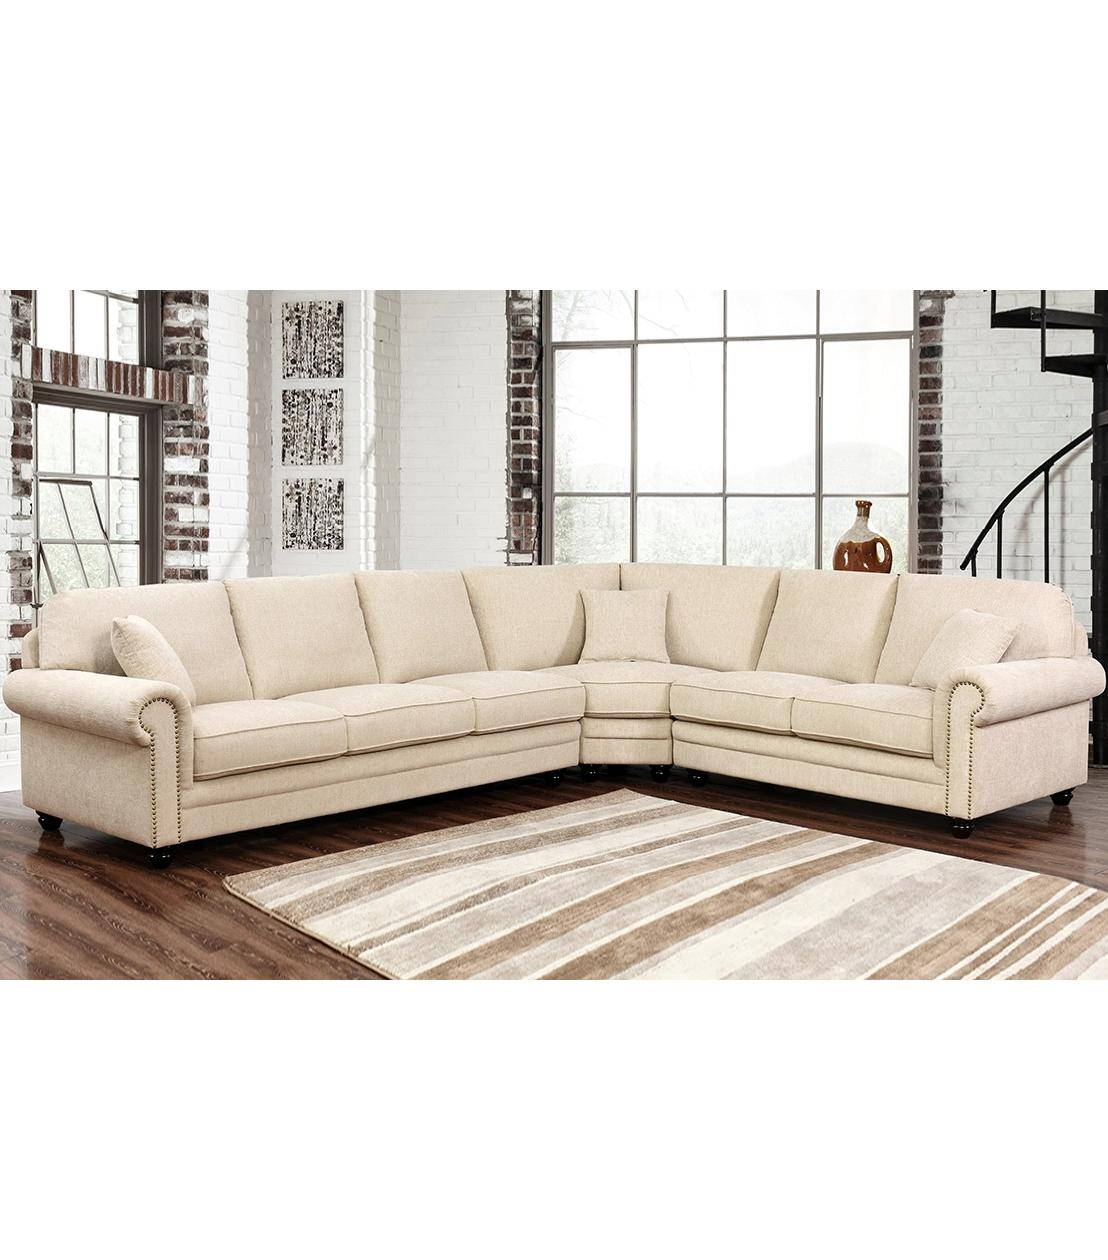 Sectionals : Deana Fabric Sectional Regarding Abbyson Sectional Sofas (Image 13 of 20)